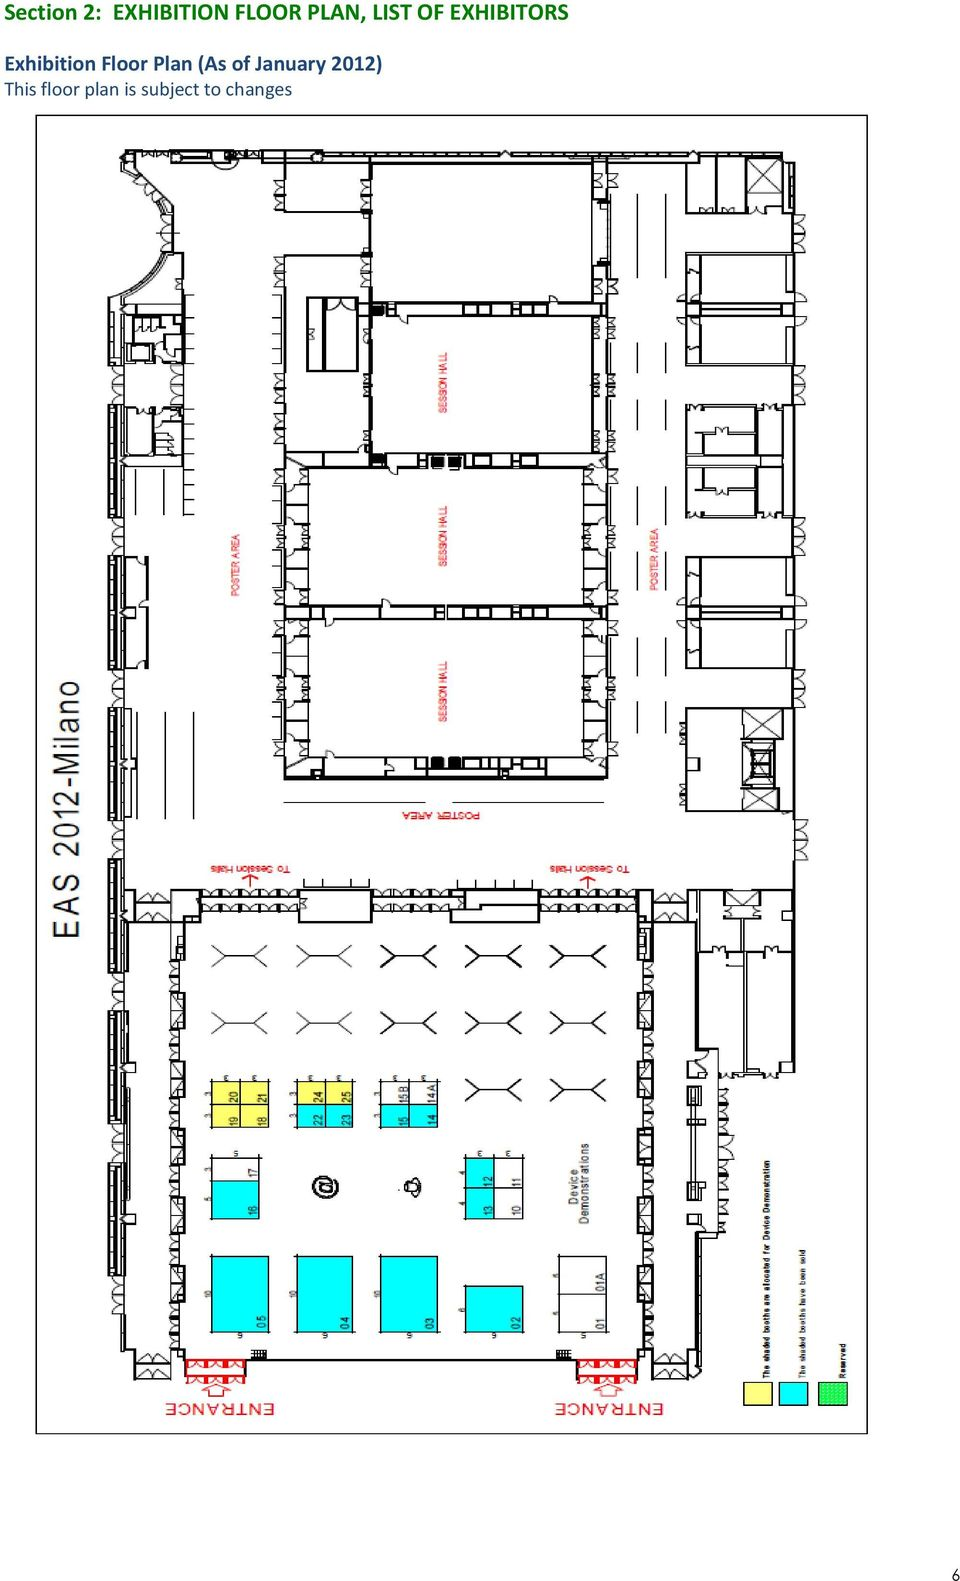 Floor Plan (As of January 2012)